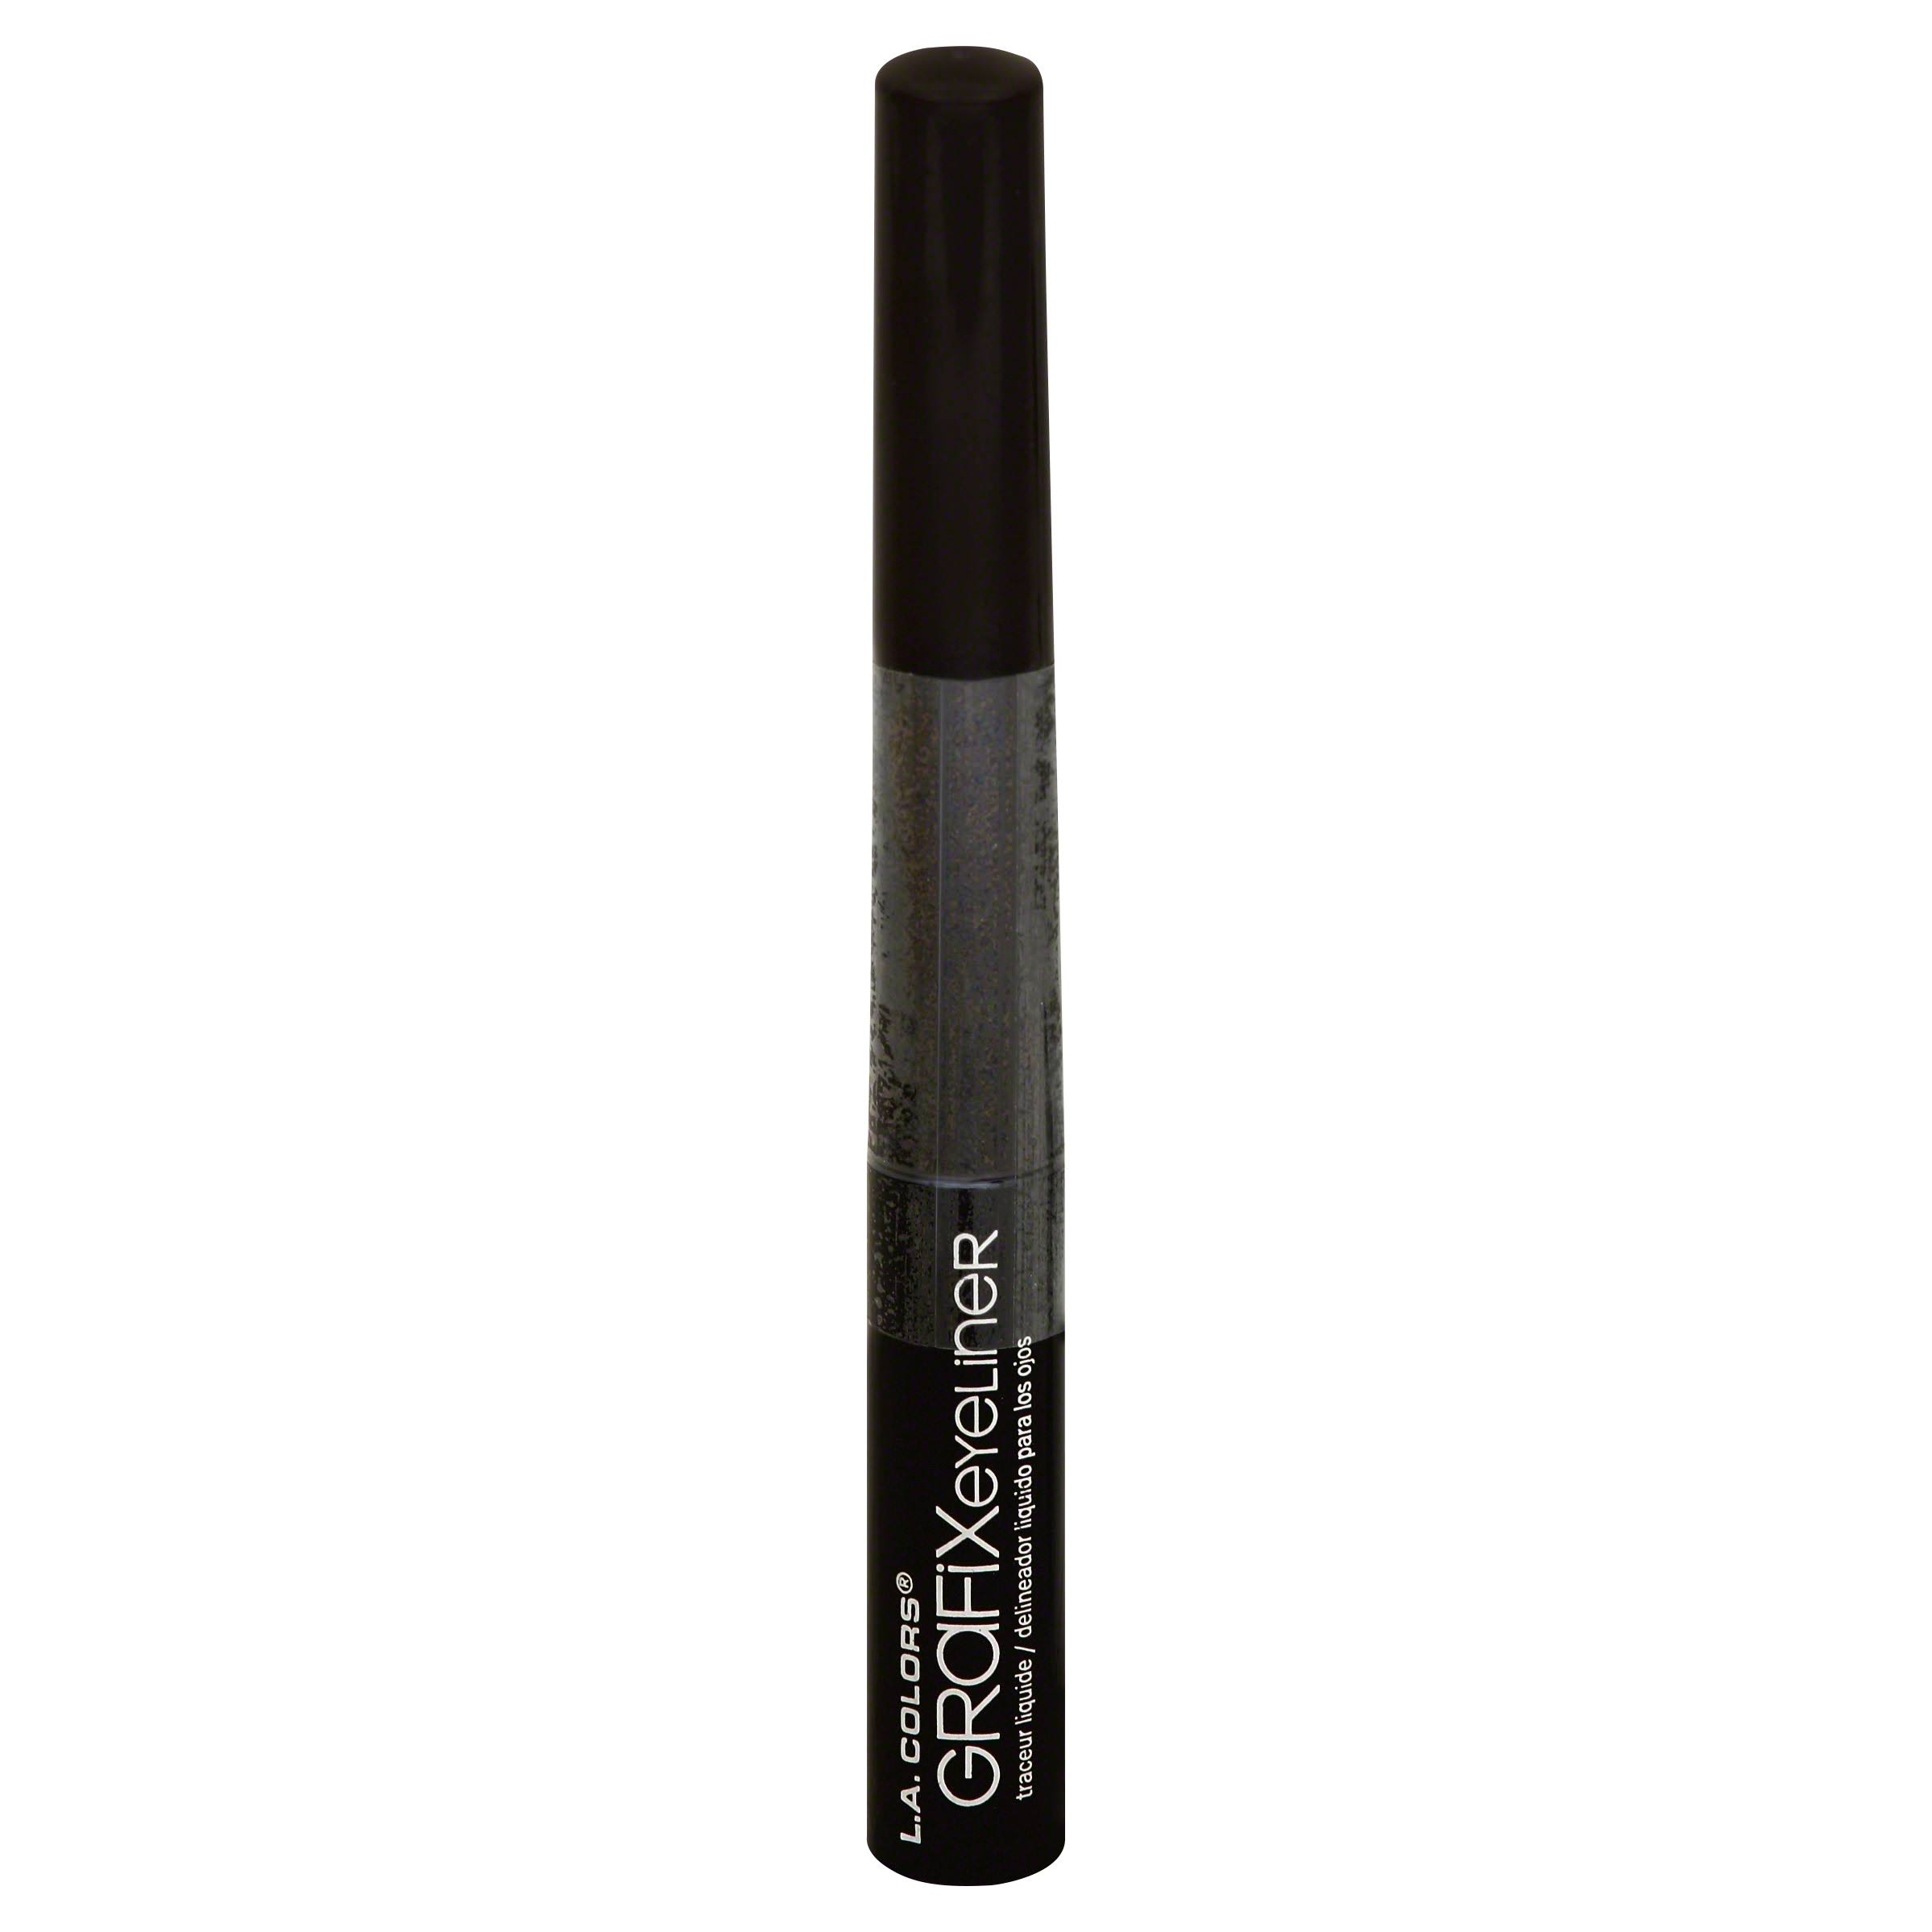 La Colours Grafix Liquid Eyeliner - 734 Dark Brown